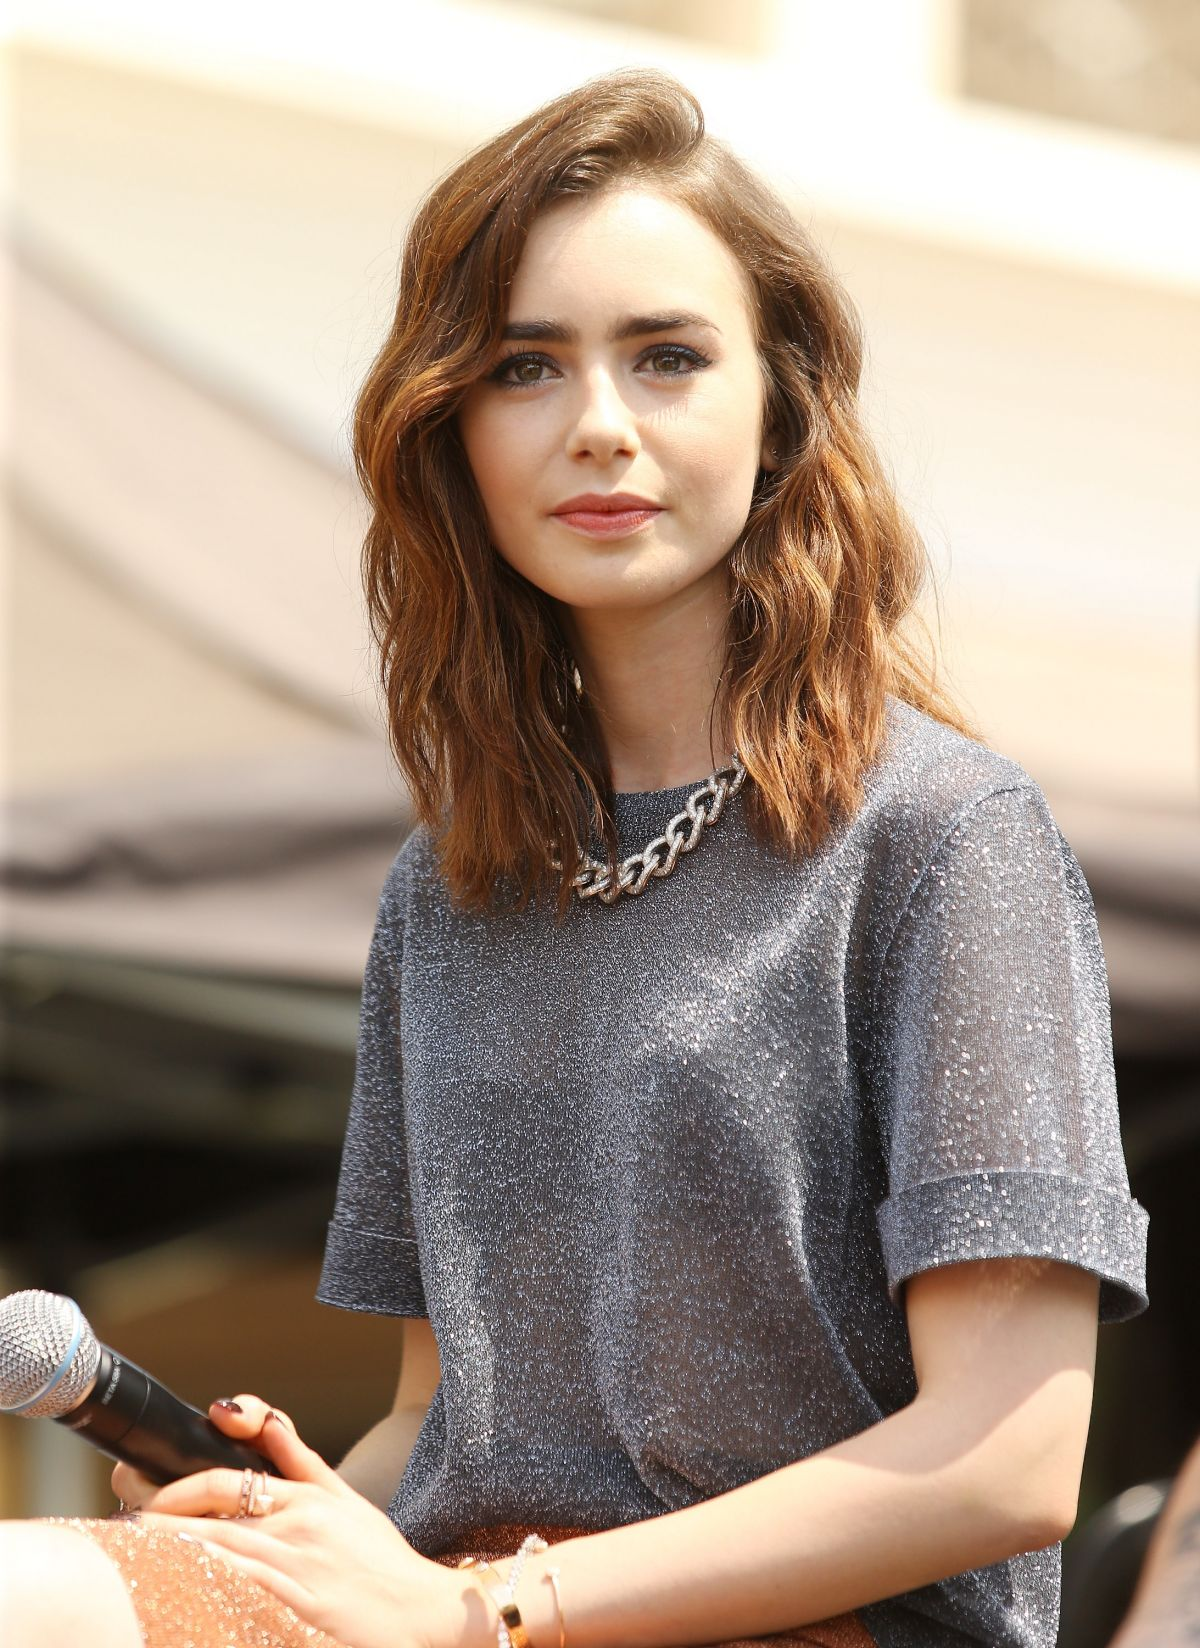 Lily Collins Hair Color In Mortal Instruments 64195 Trendnet